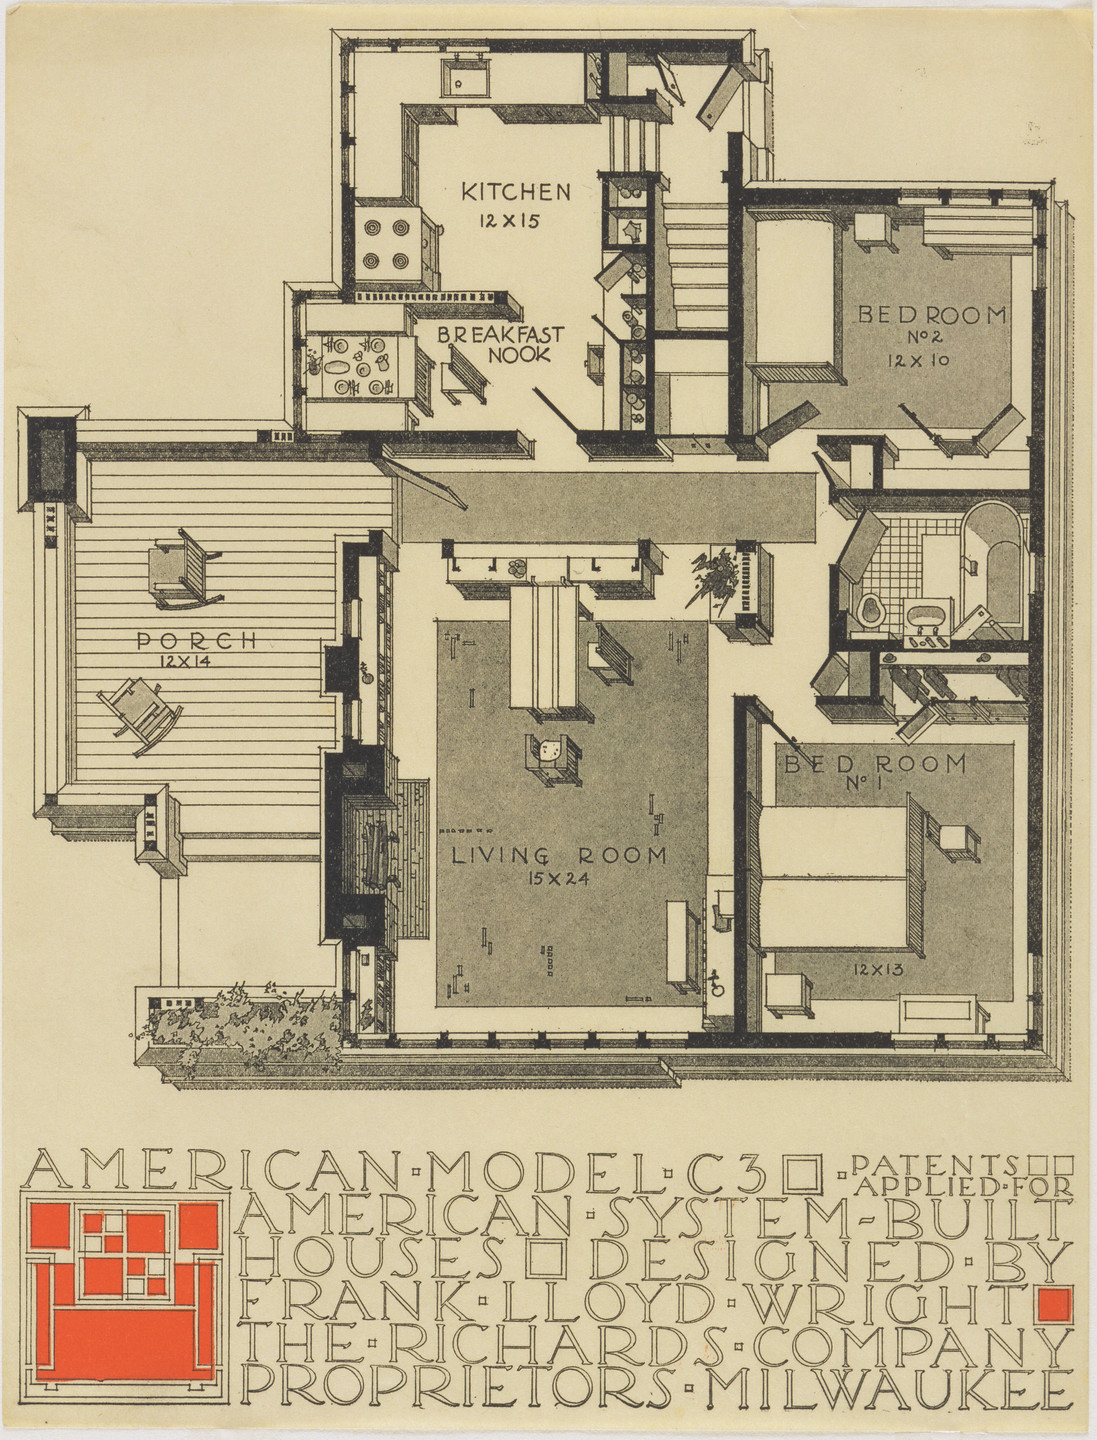 Frank Lloyd Wright. American System-Built Houses for The Richards Company project, (Plan oblique of model C3). 1915–1917